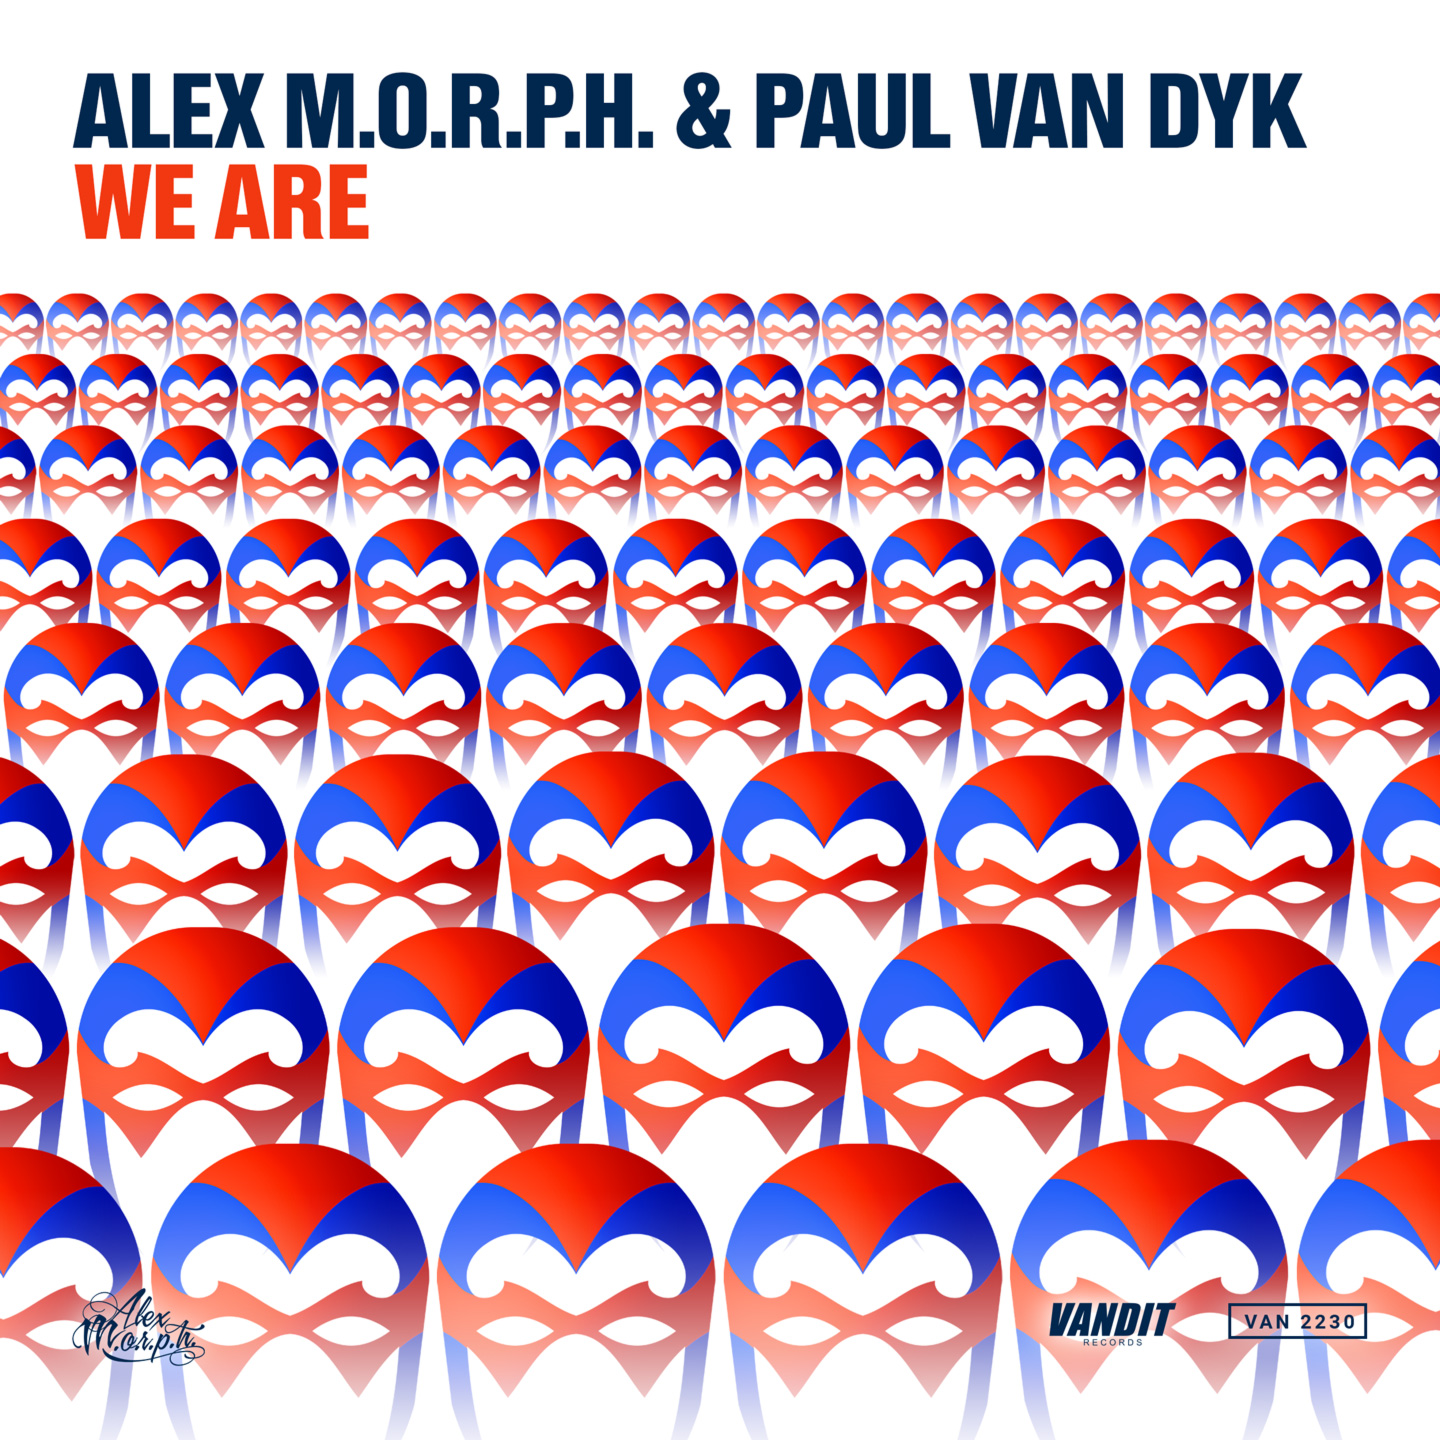 paul_van_dyk_alex_morph_we_are_contest